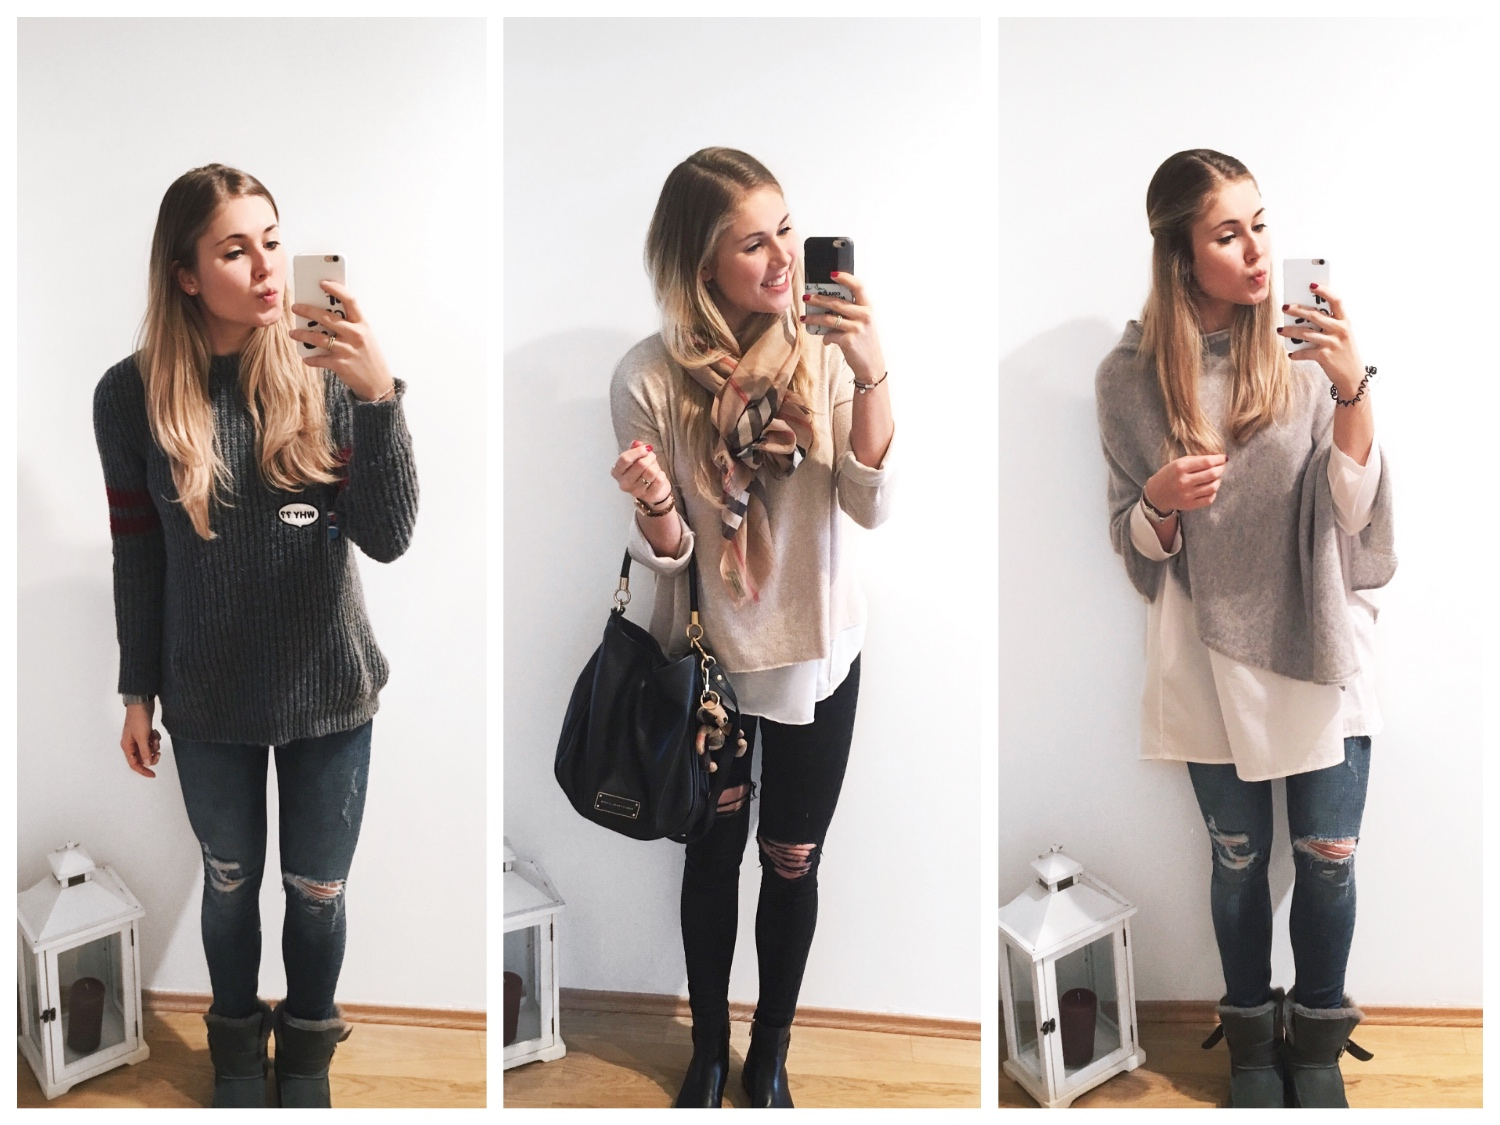 Instagram Outfits #3